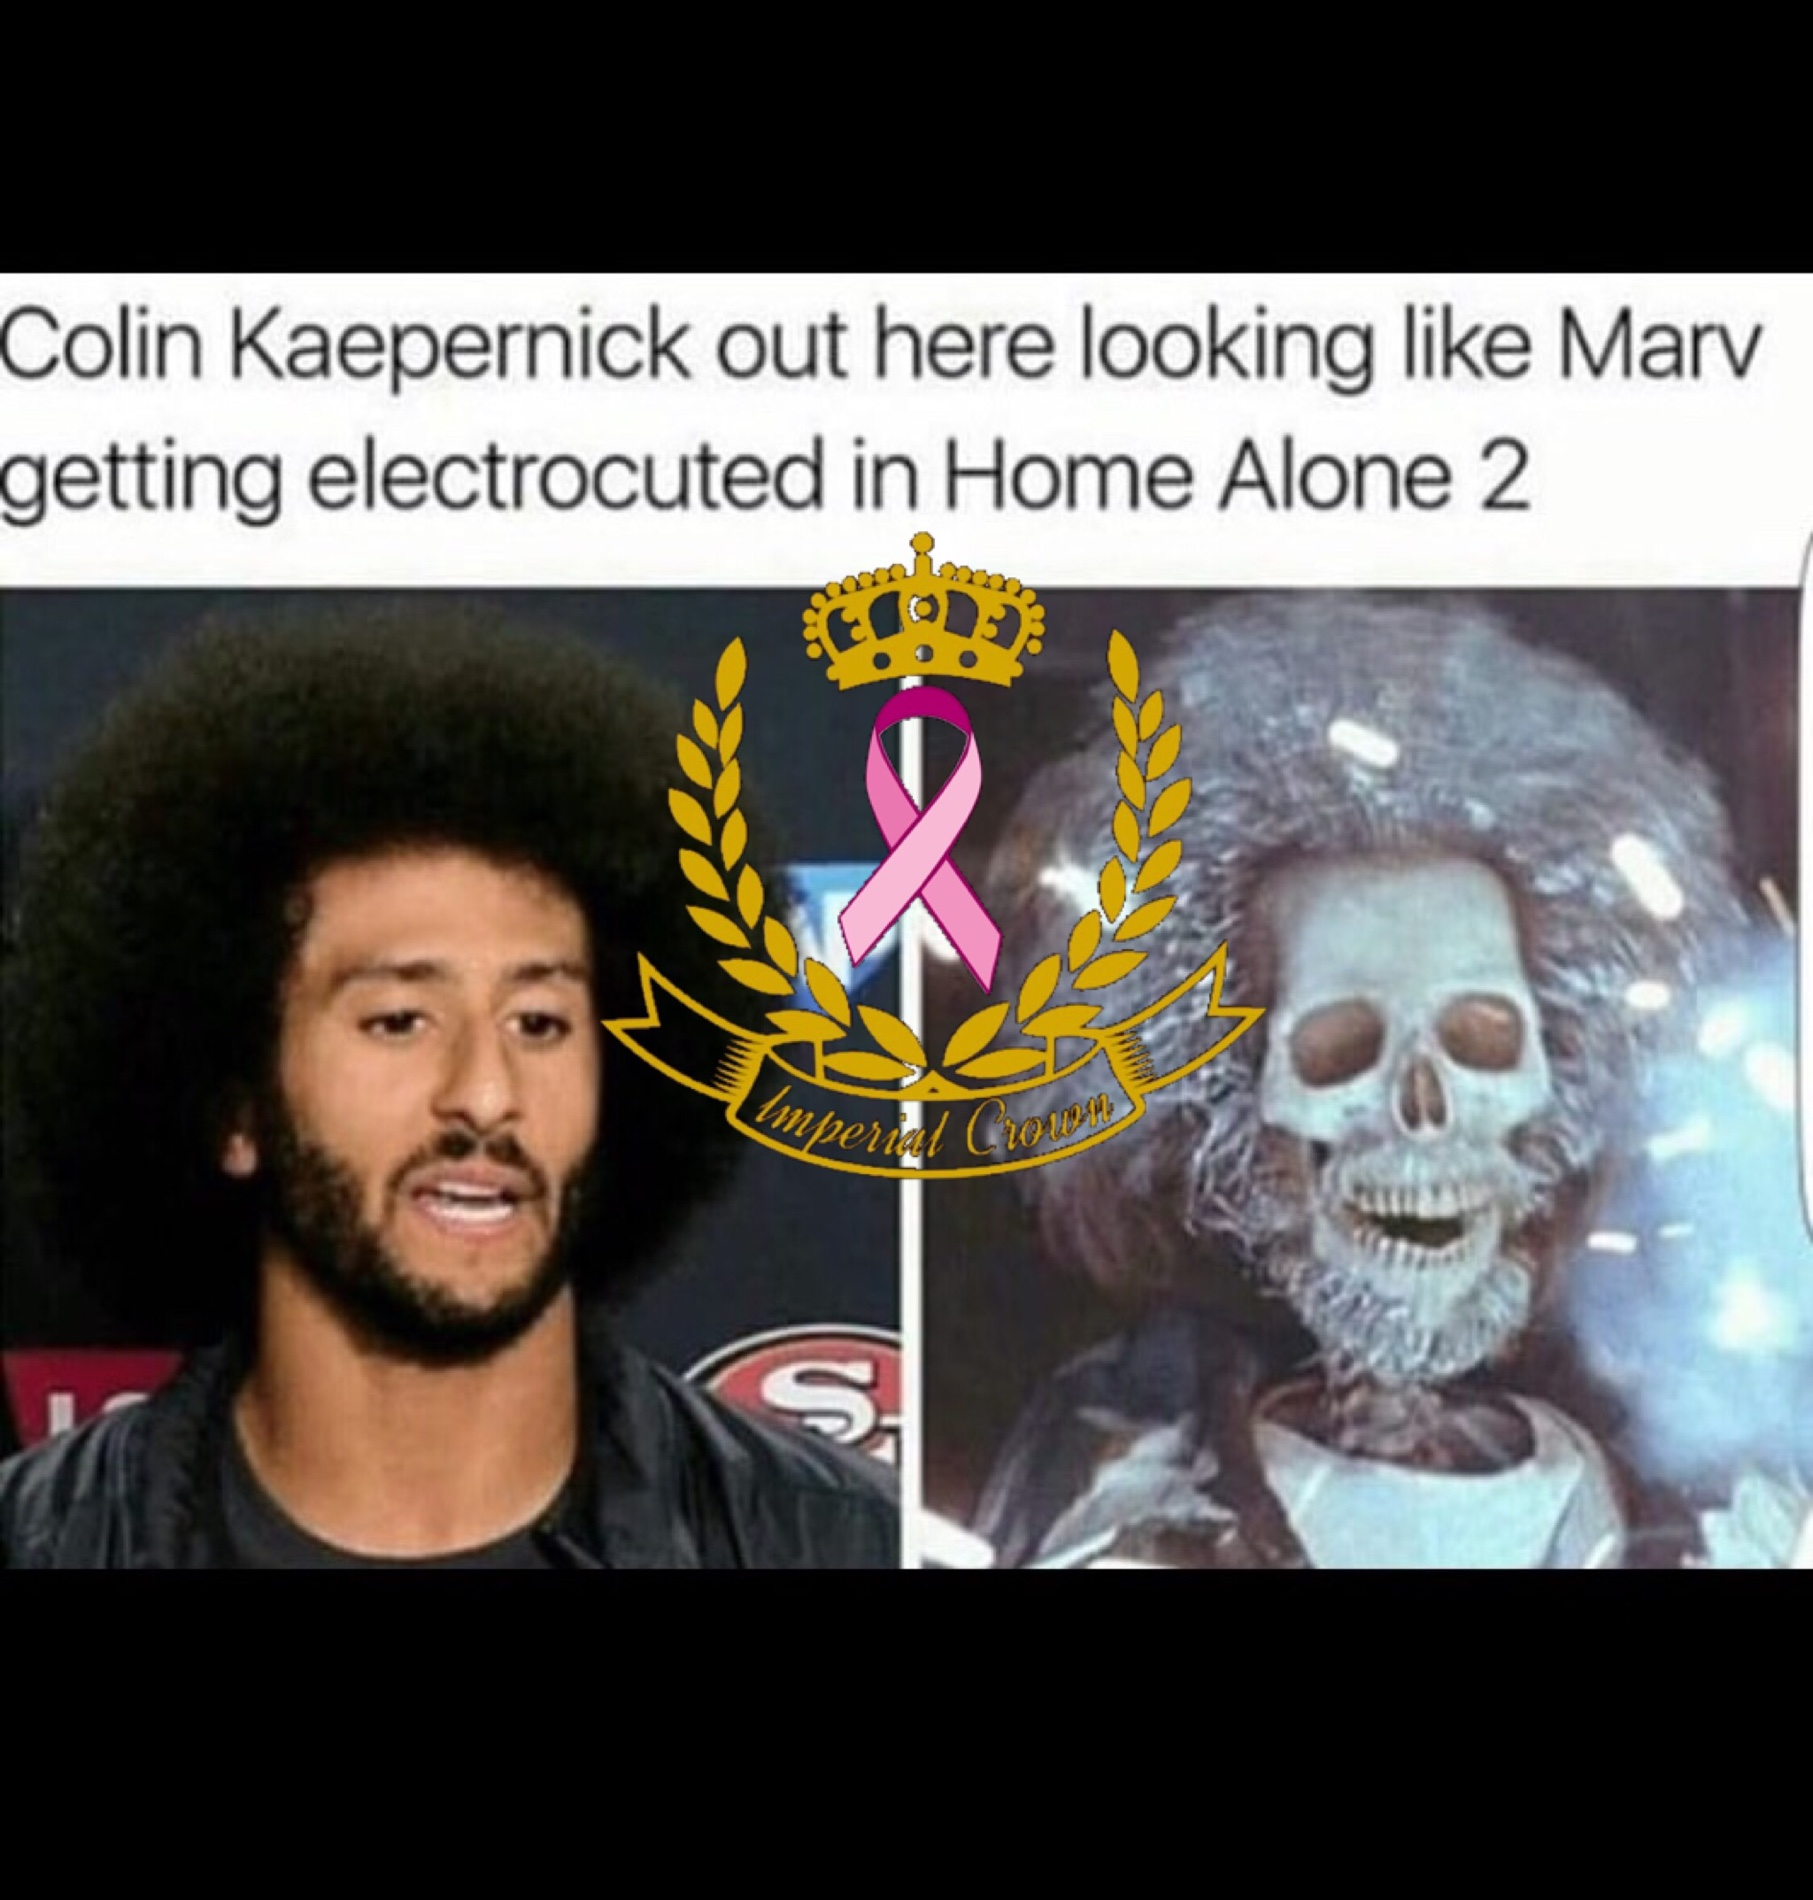 Colin kaepernick out here looking like Marv getting electrocuted in home alone 2